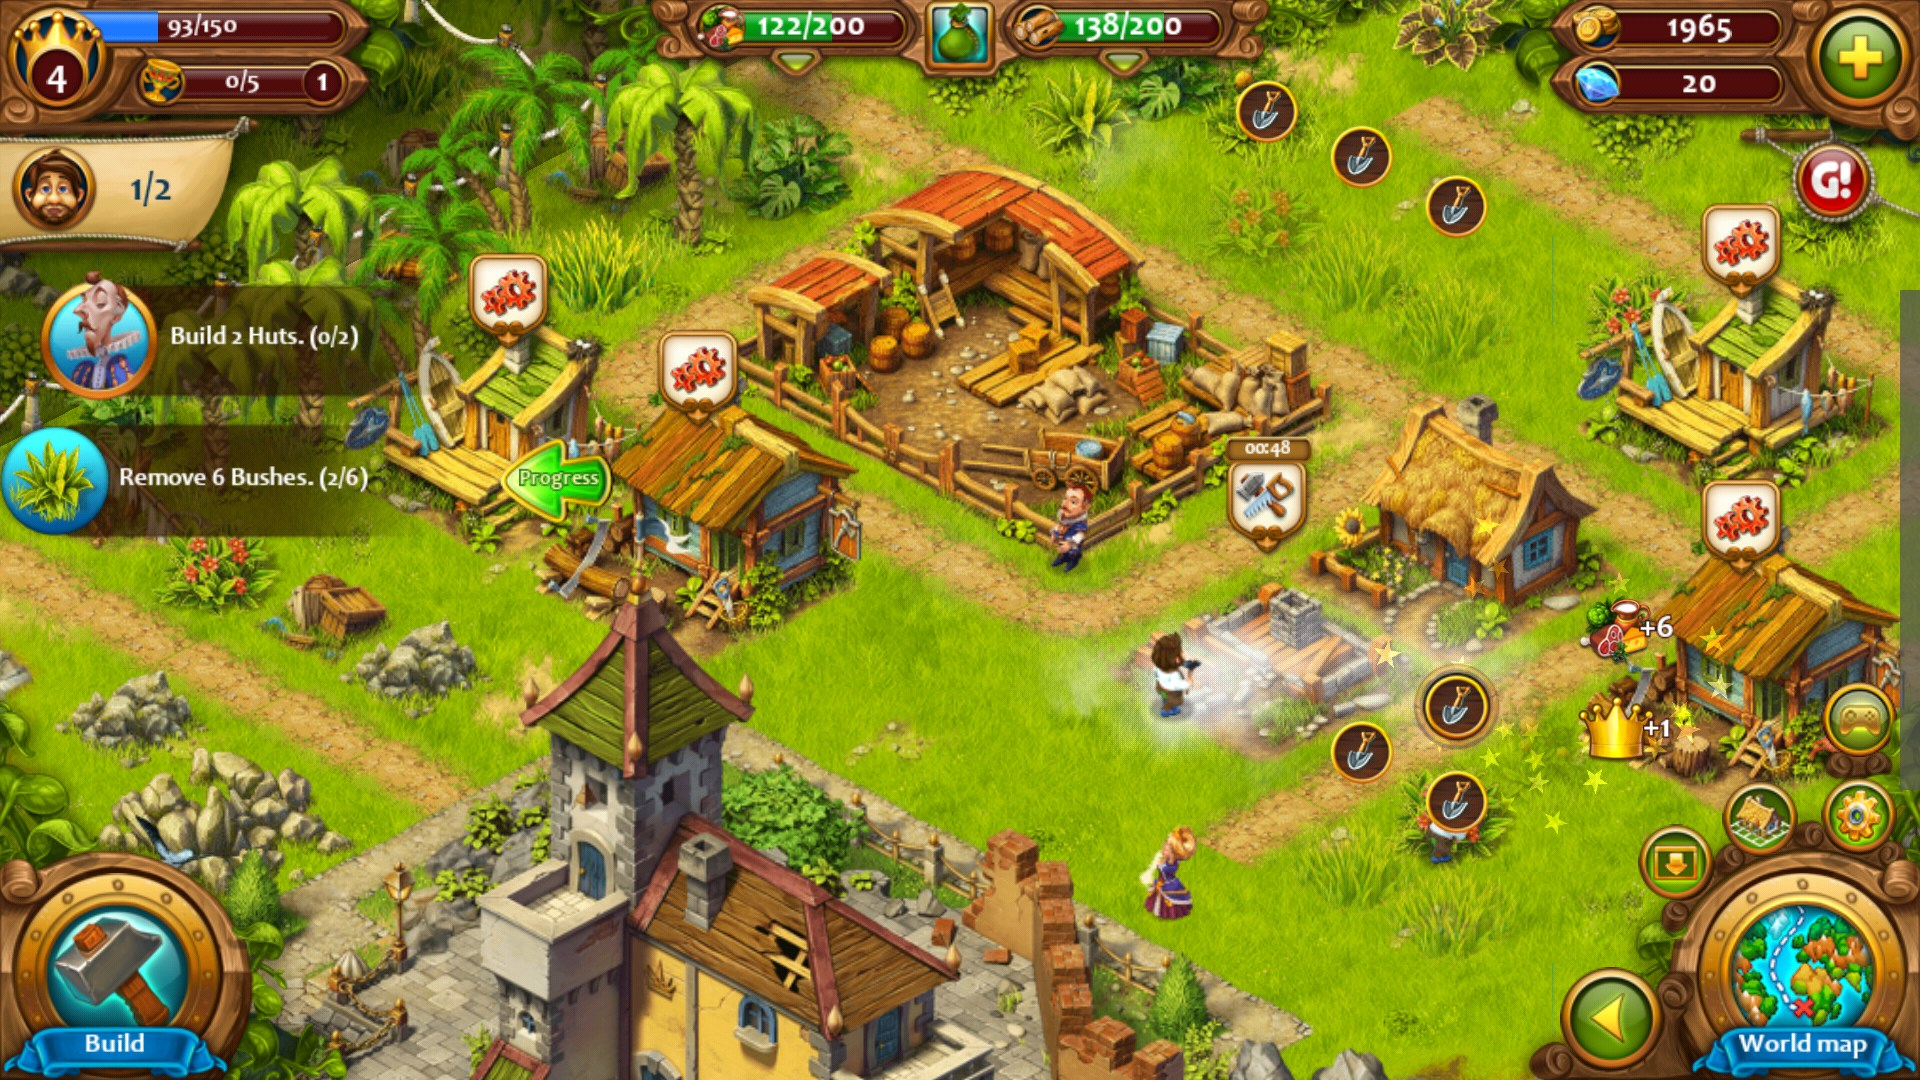 Factory Kingdom Run Your Own Business Game - Free online games at